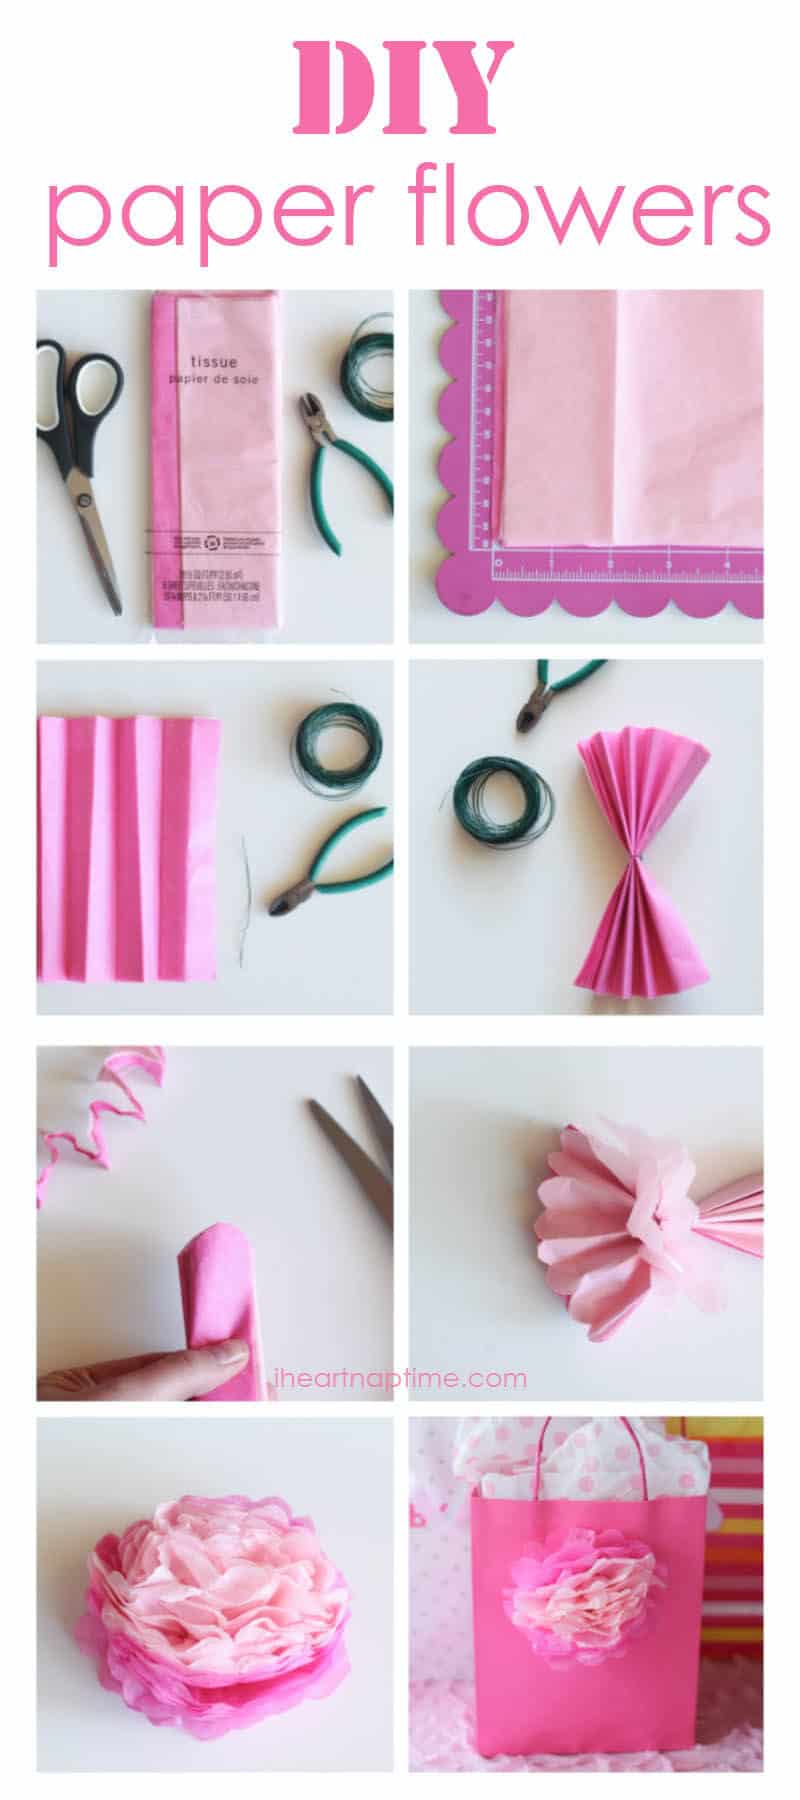 How to make tissue paper flowers i heart nap time how to make tissue paper flowers mightylinksfo Gallery